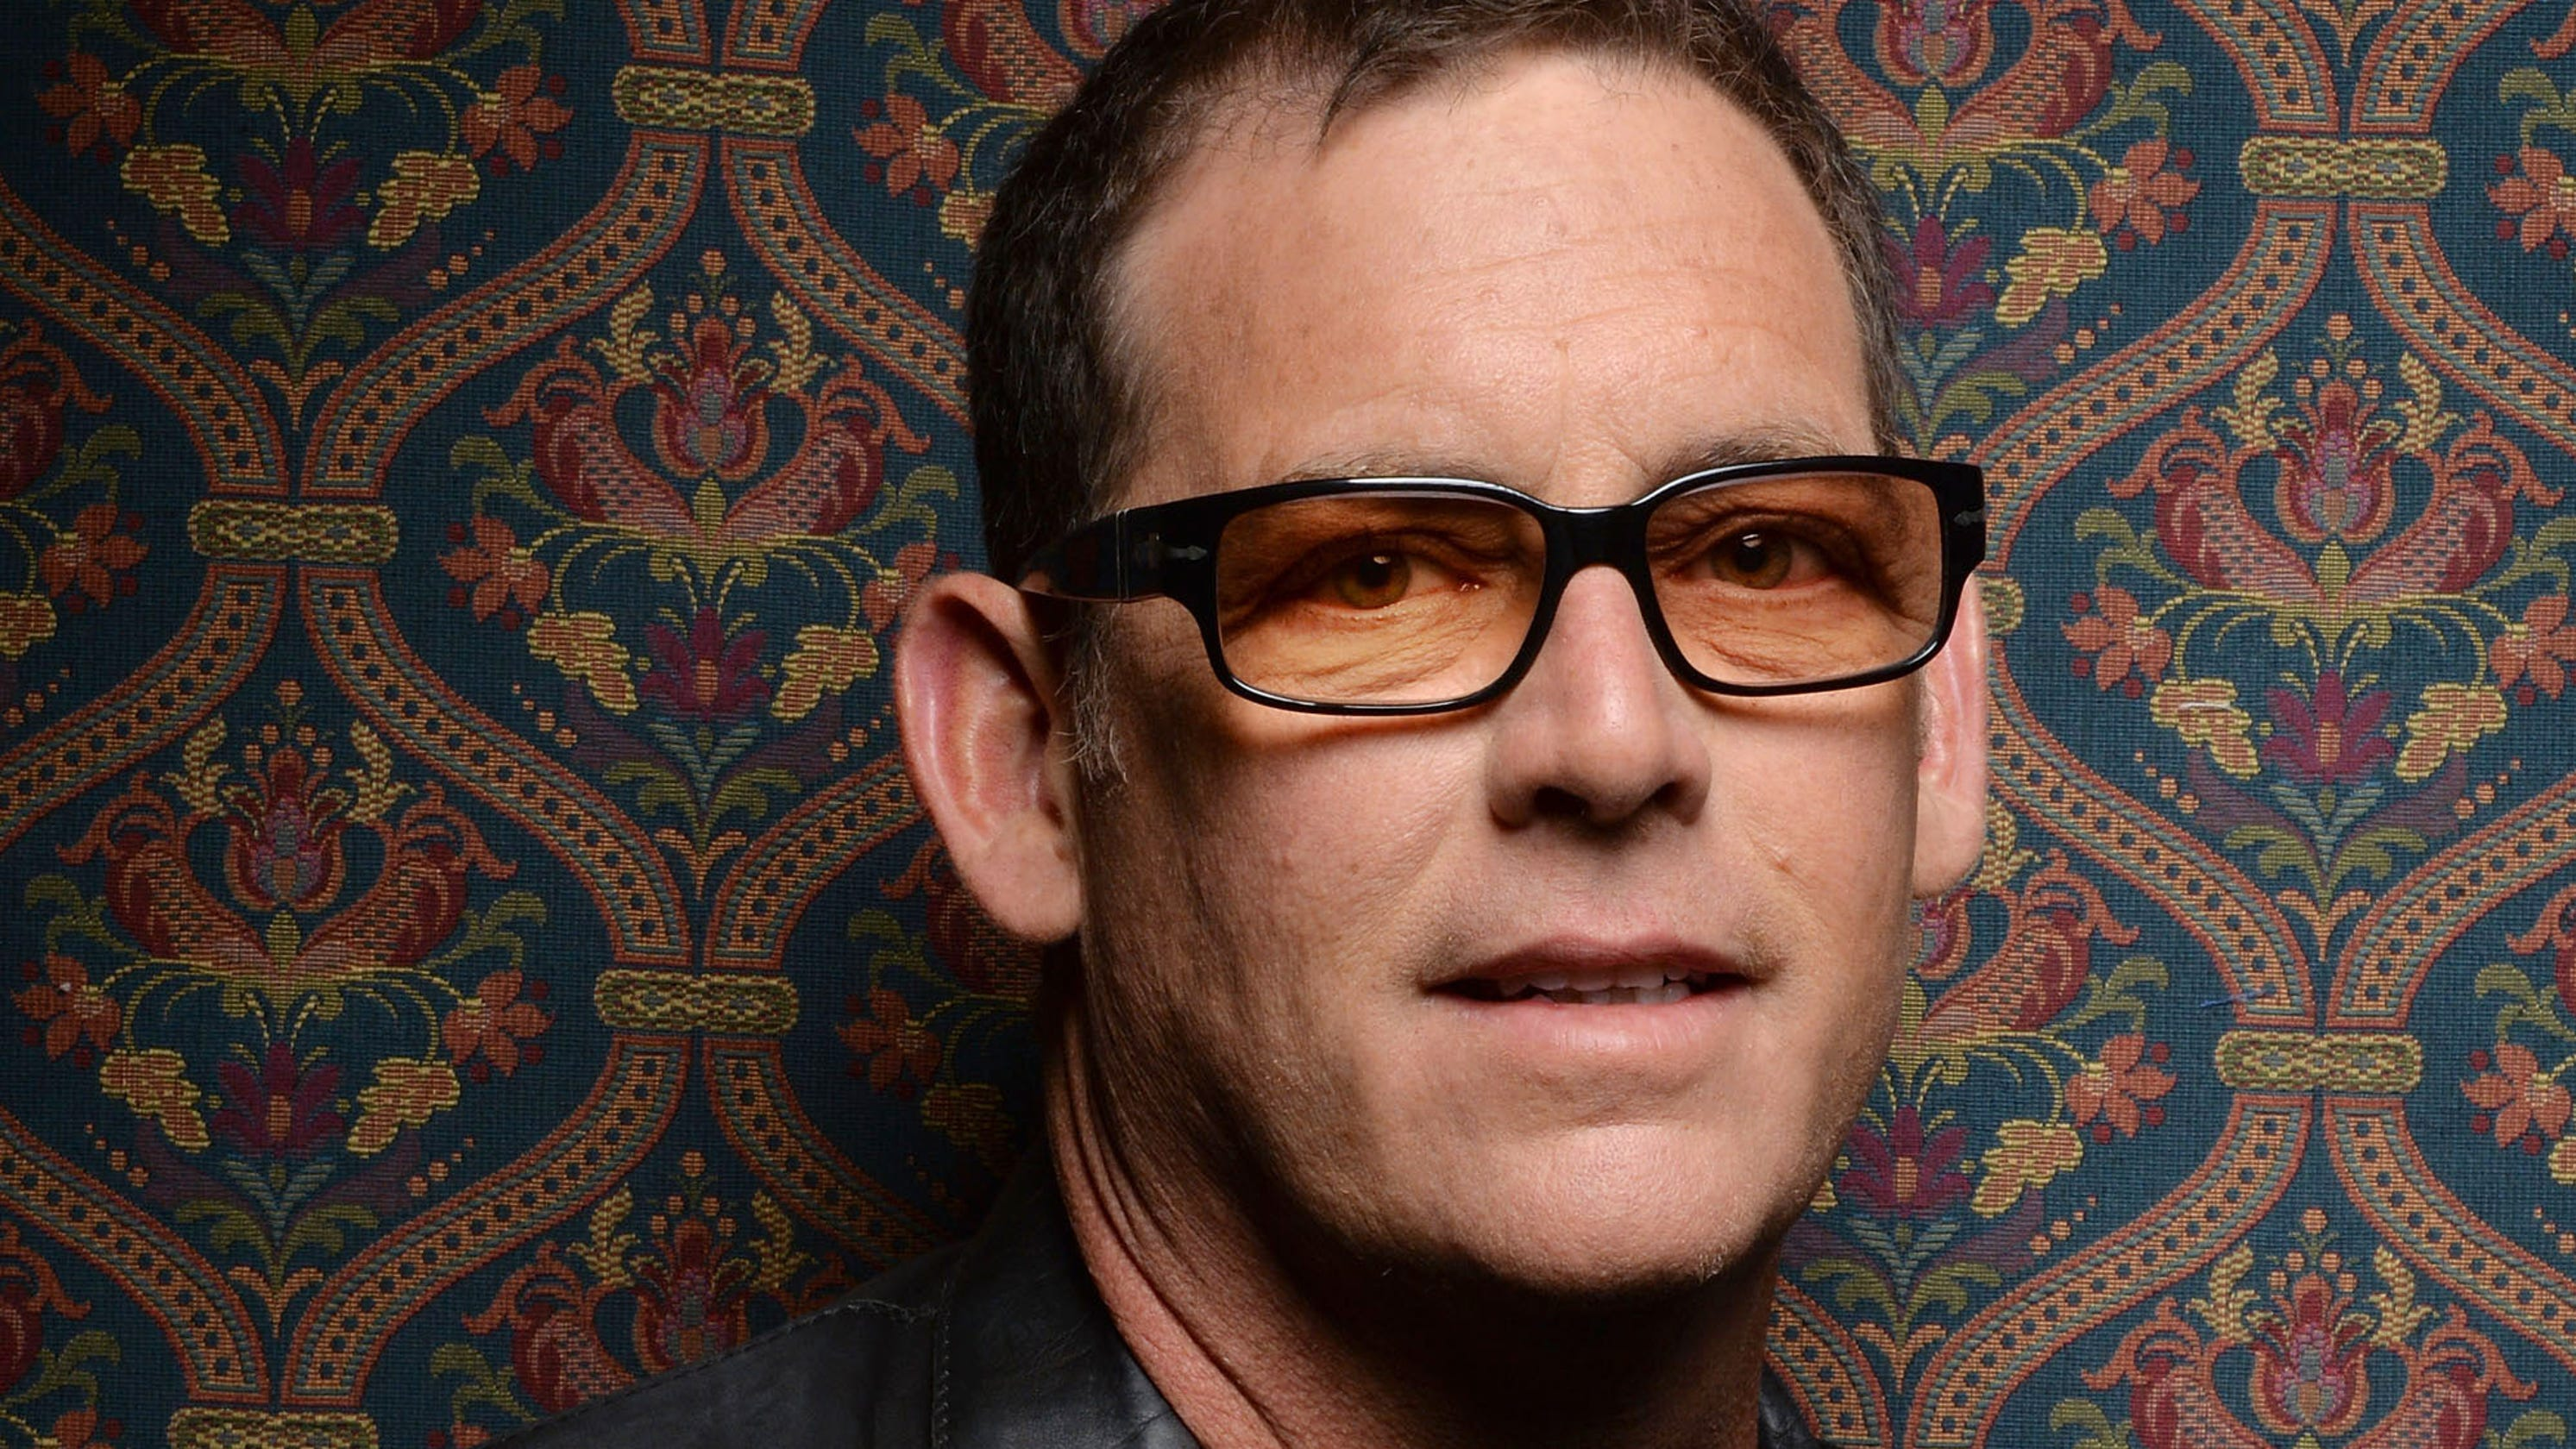 'Bachelor' creator Mike Fleiss accused by pregnant wife of demanding abortion, violence